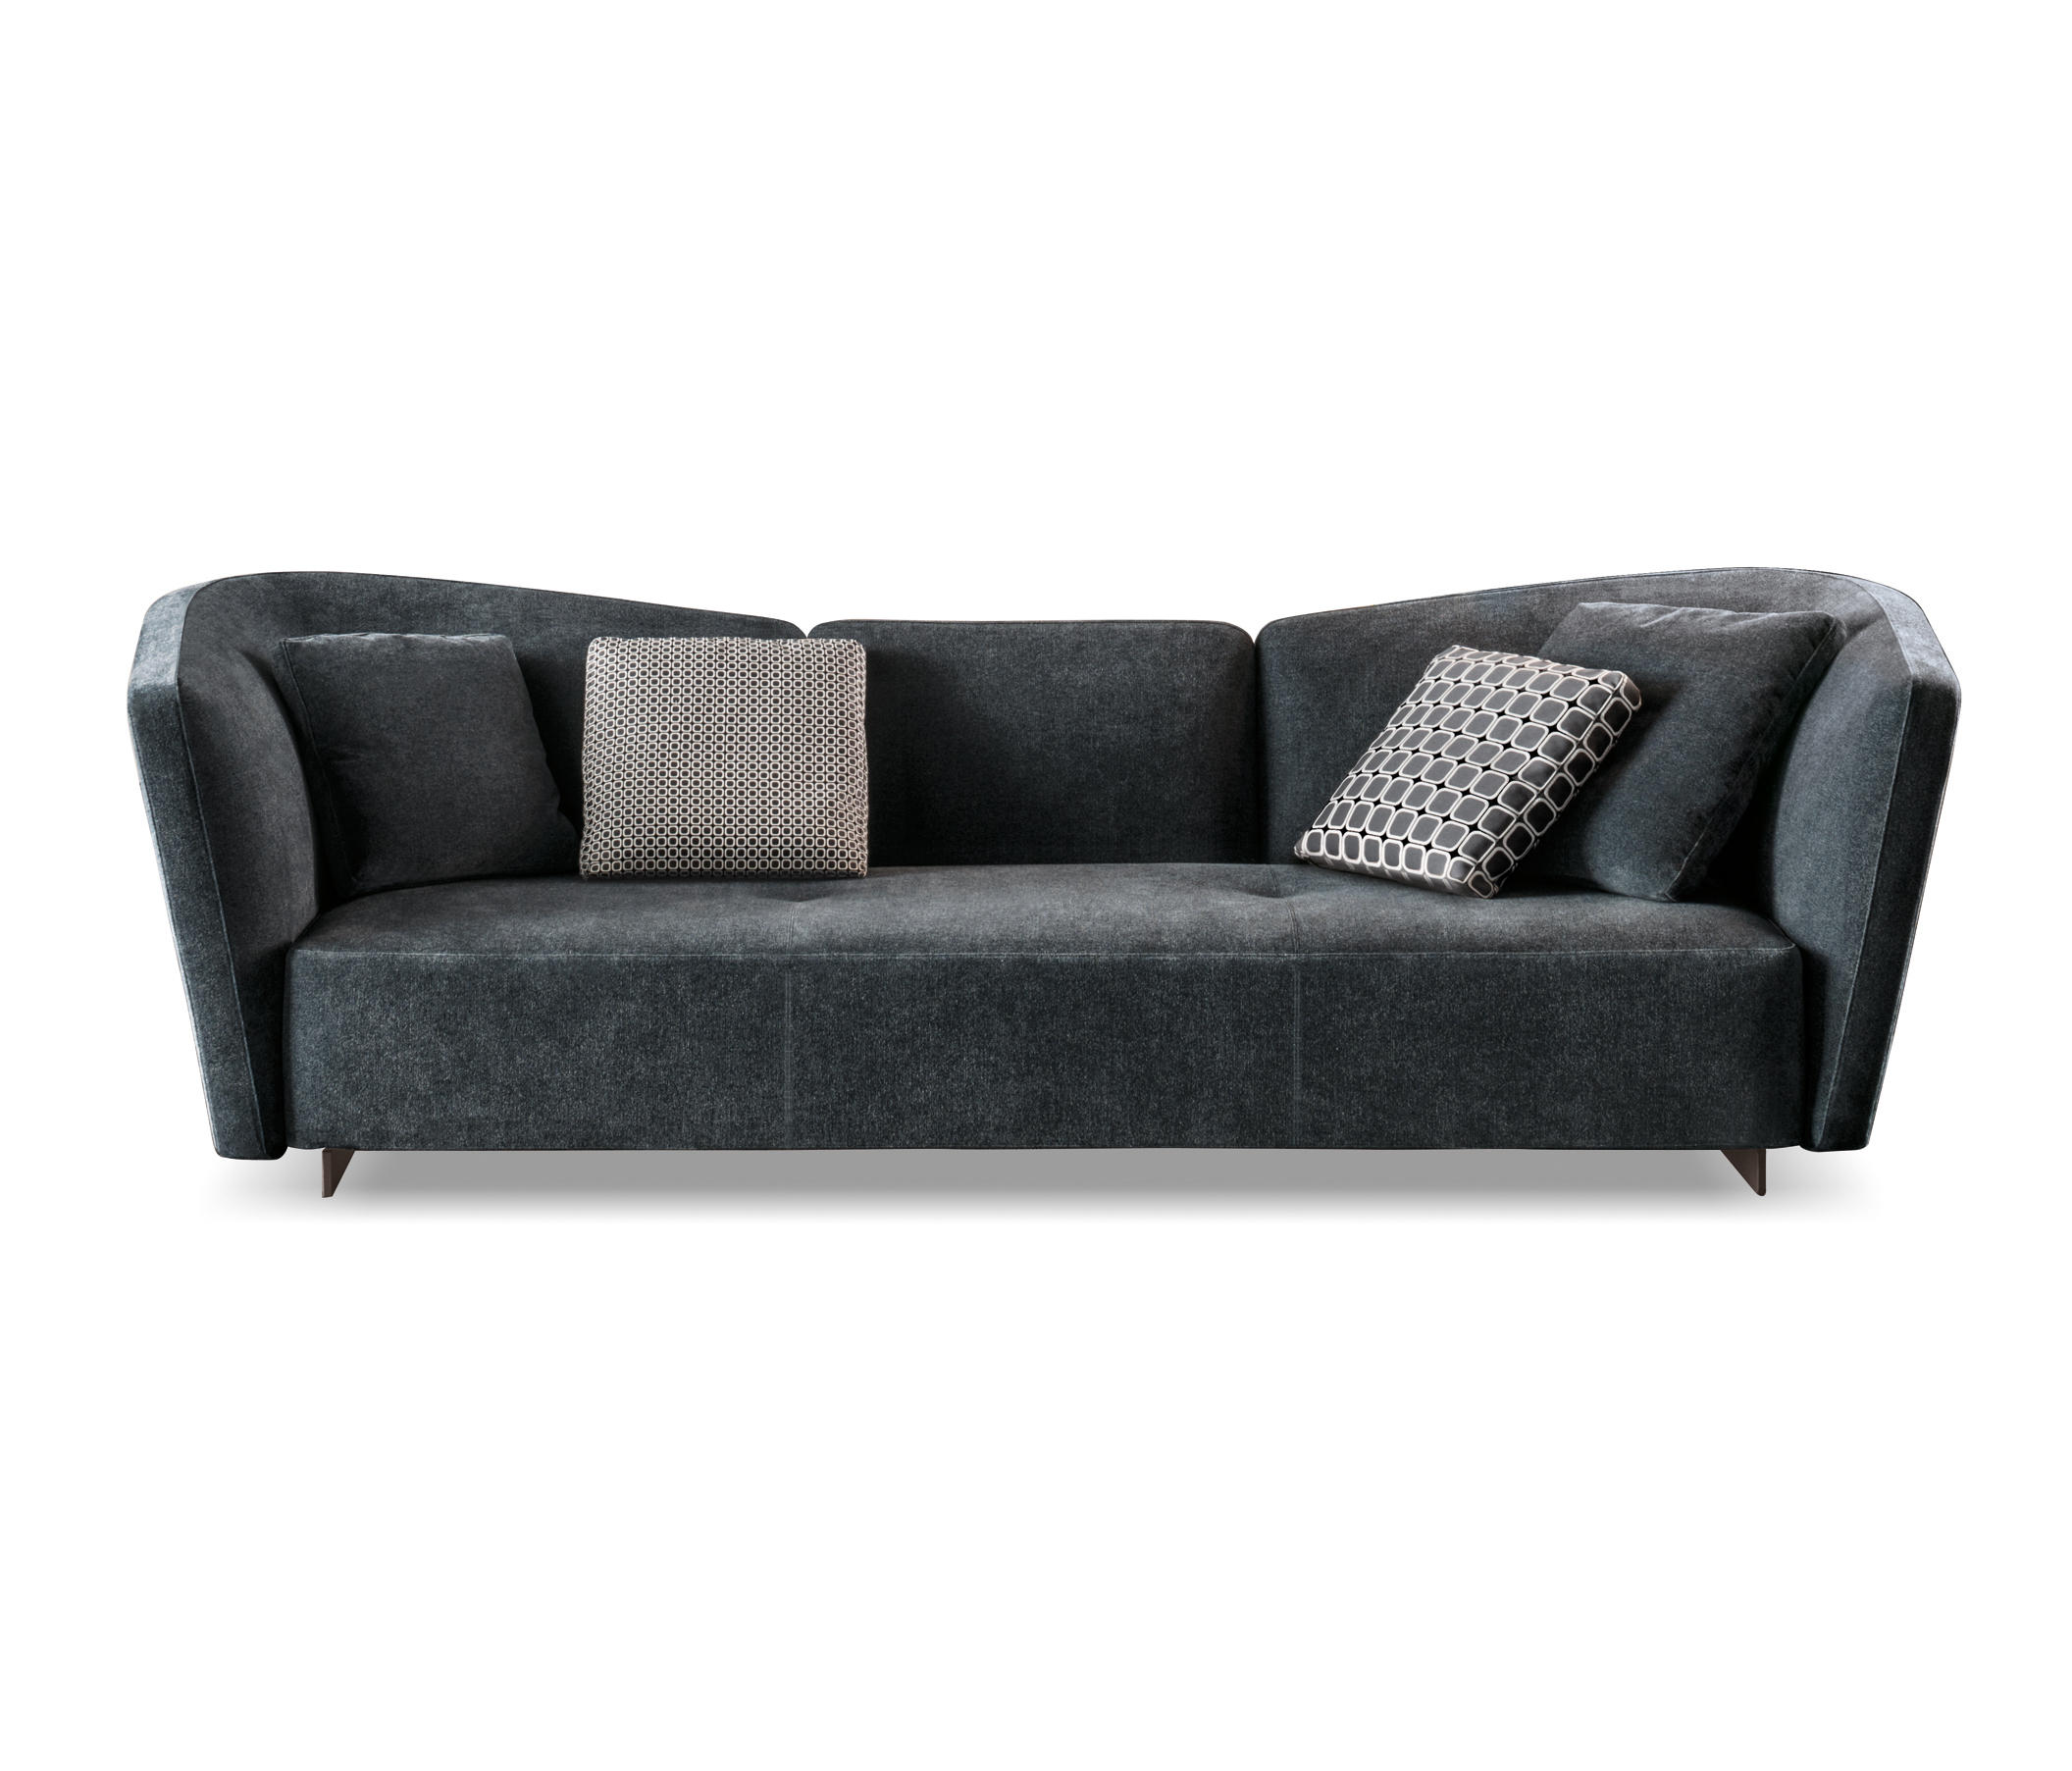 lounge seymour lounge sofas from minotti architonic. Black Bedroom Furniture Sets. Home Design Ideas